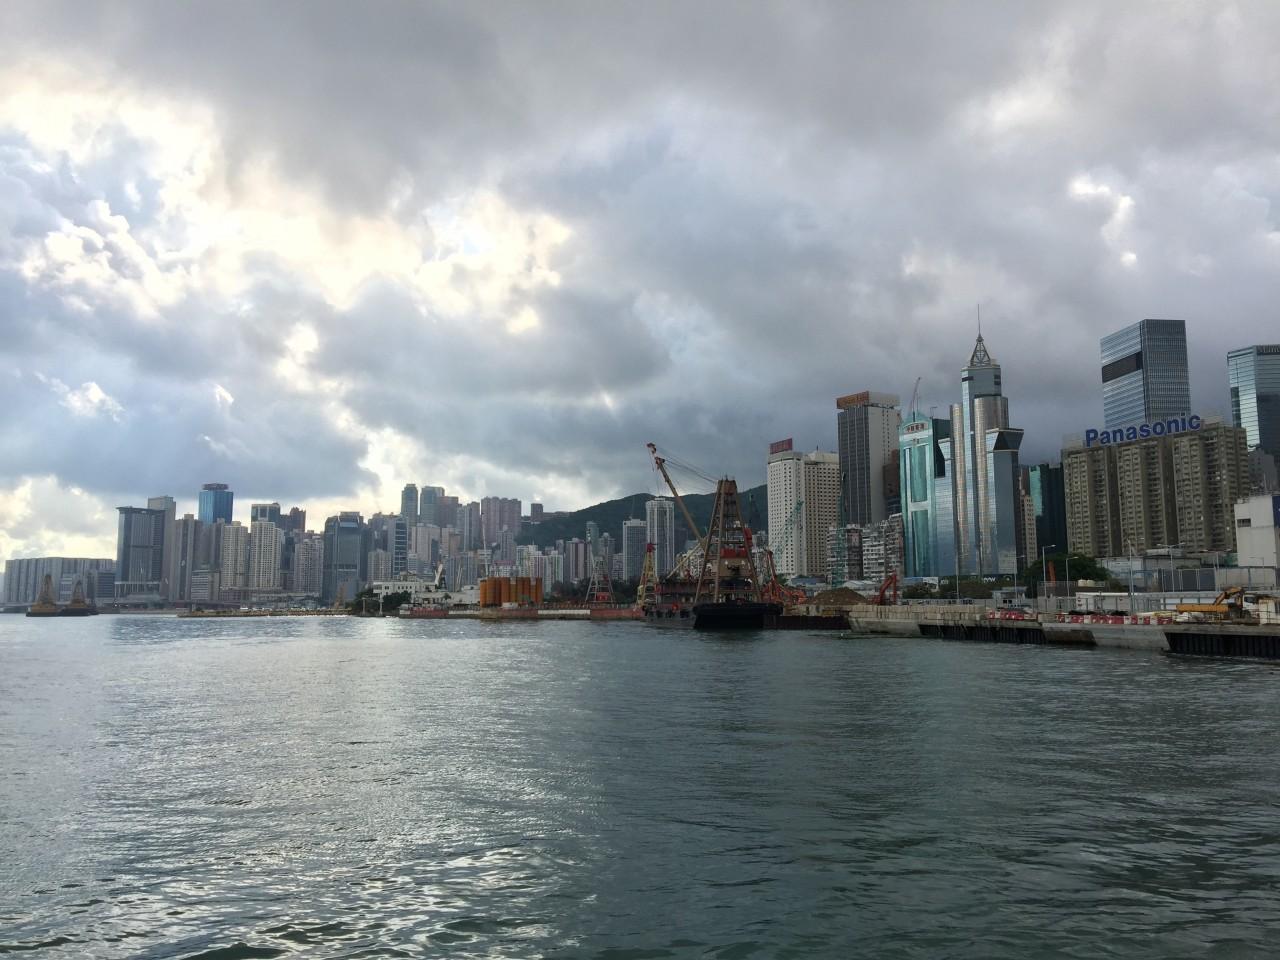 Hong Kong First Impressions